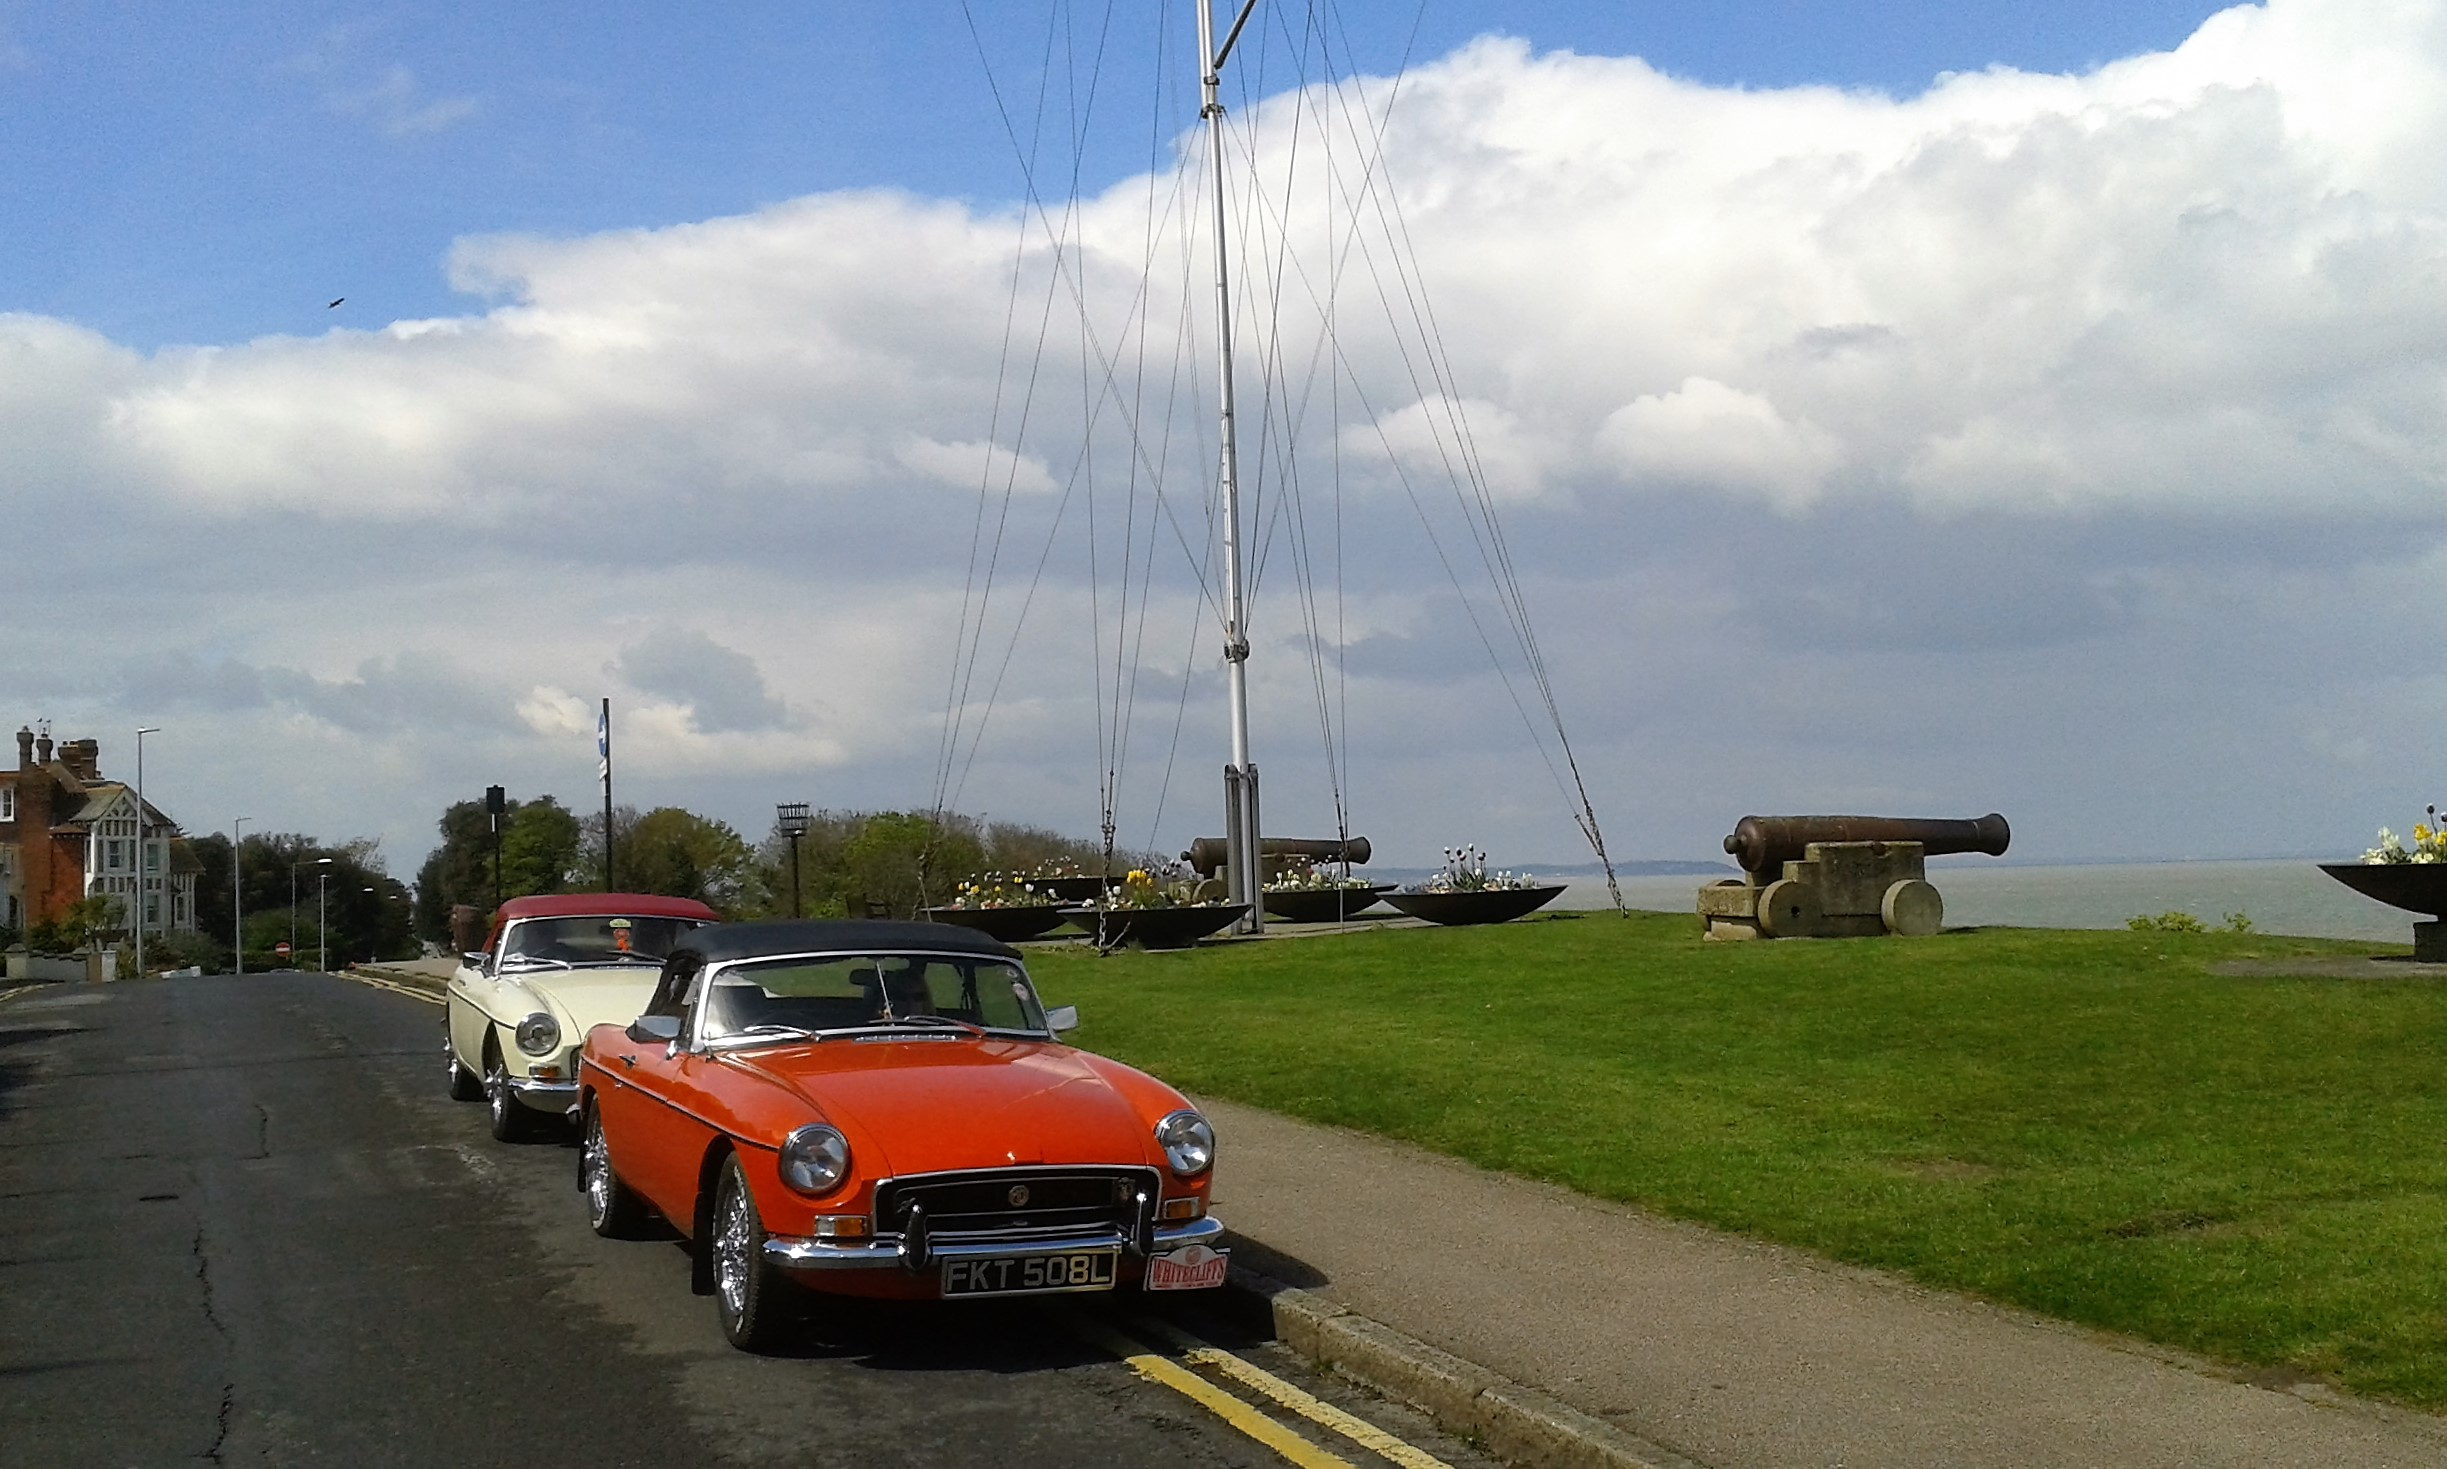 Steve and Rick's cars at Whitstable Tankerton Slopes